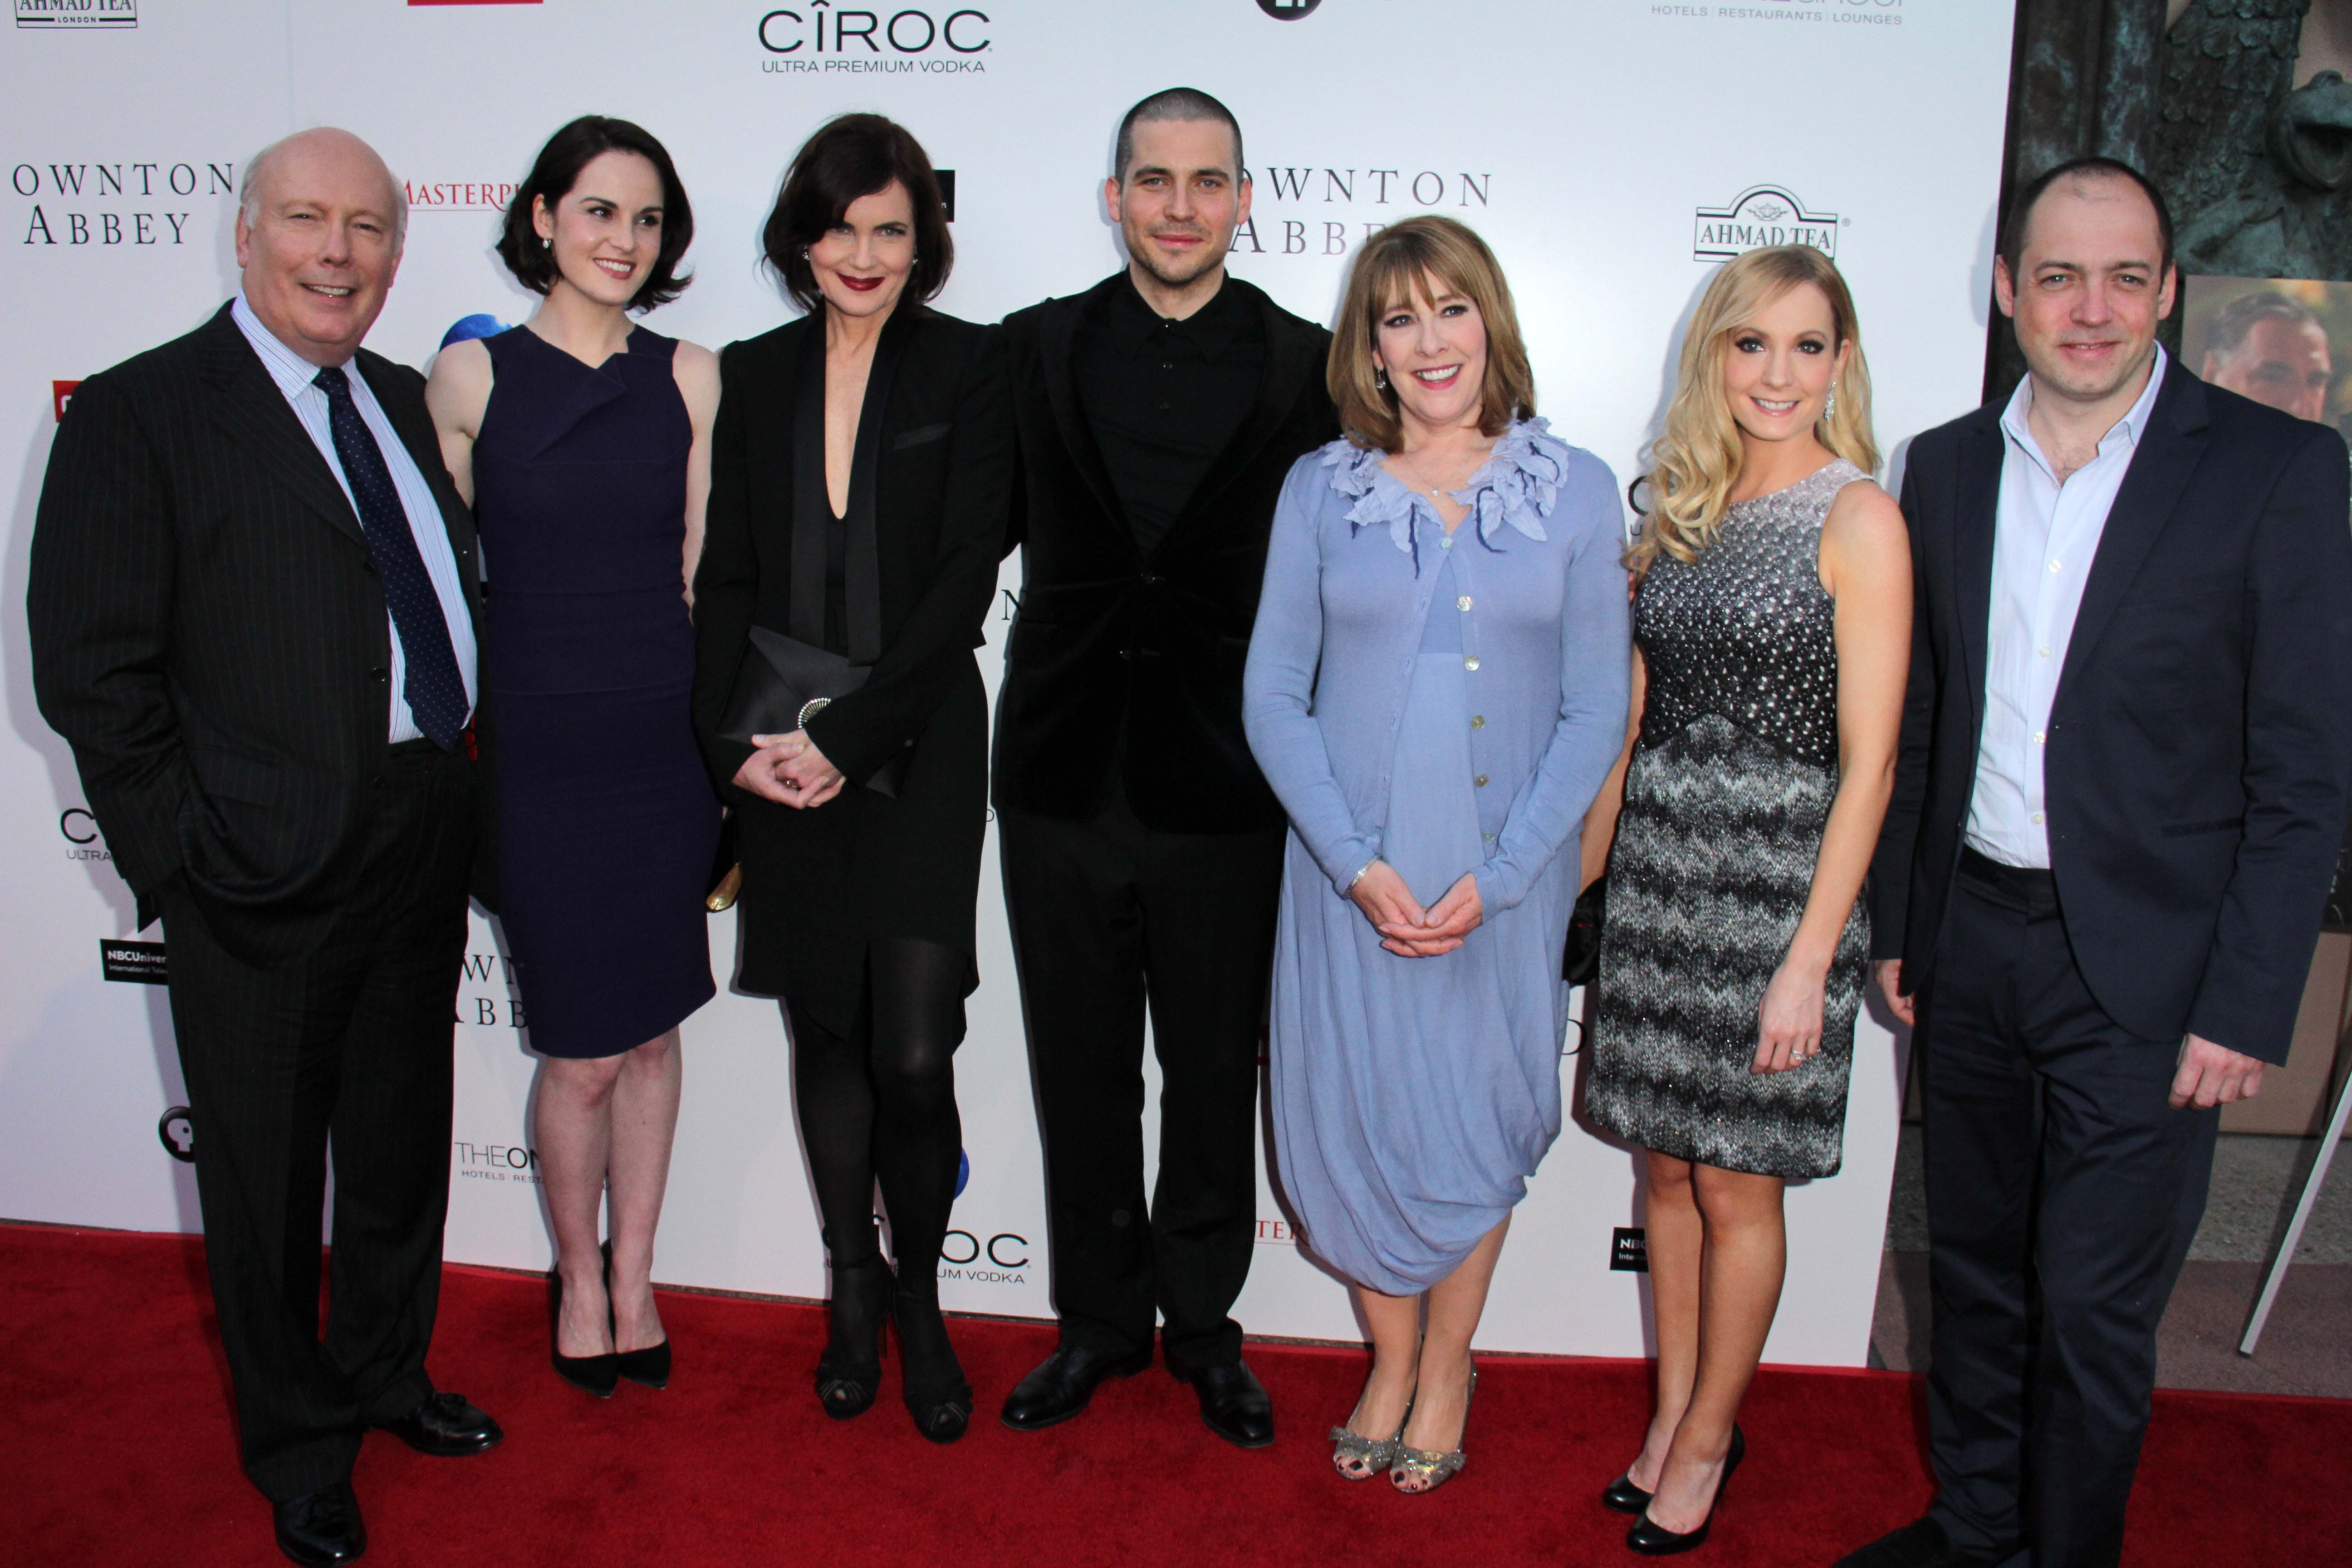 Downton Abbey Cast on Red Carpet